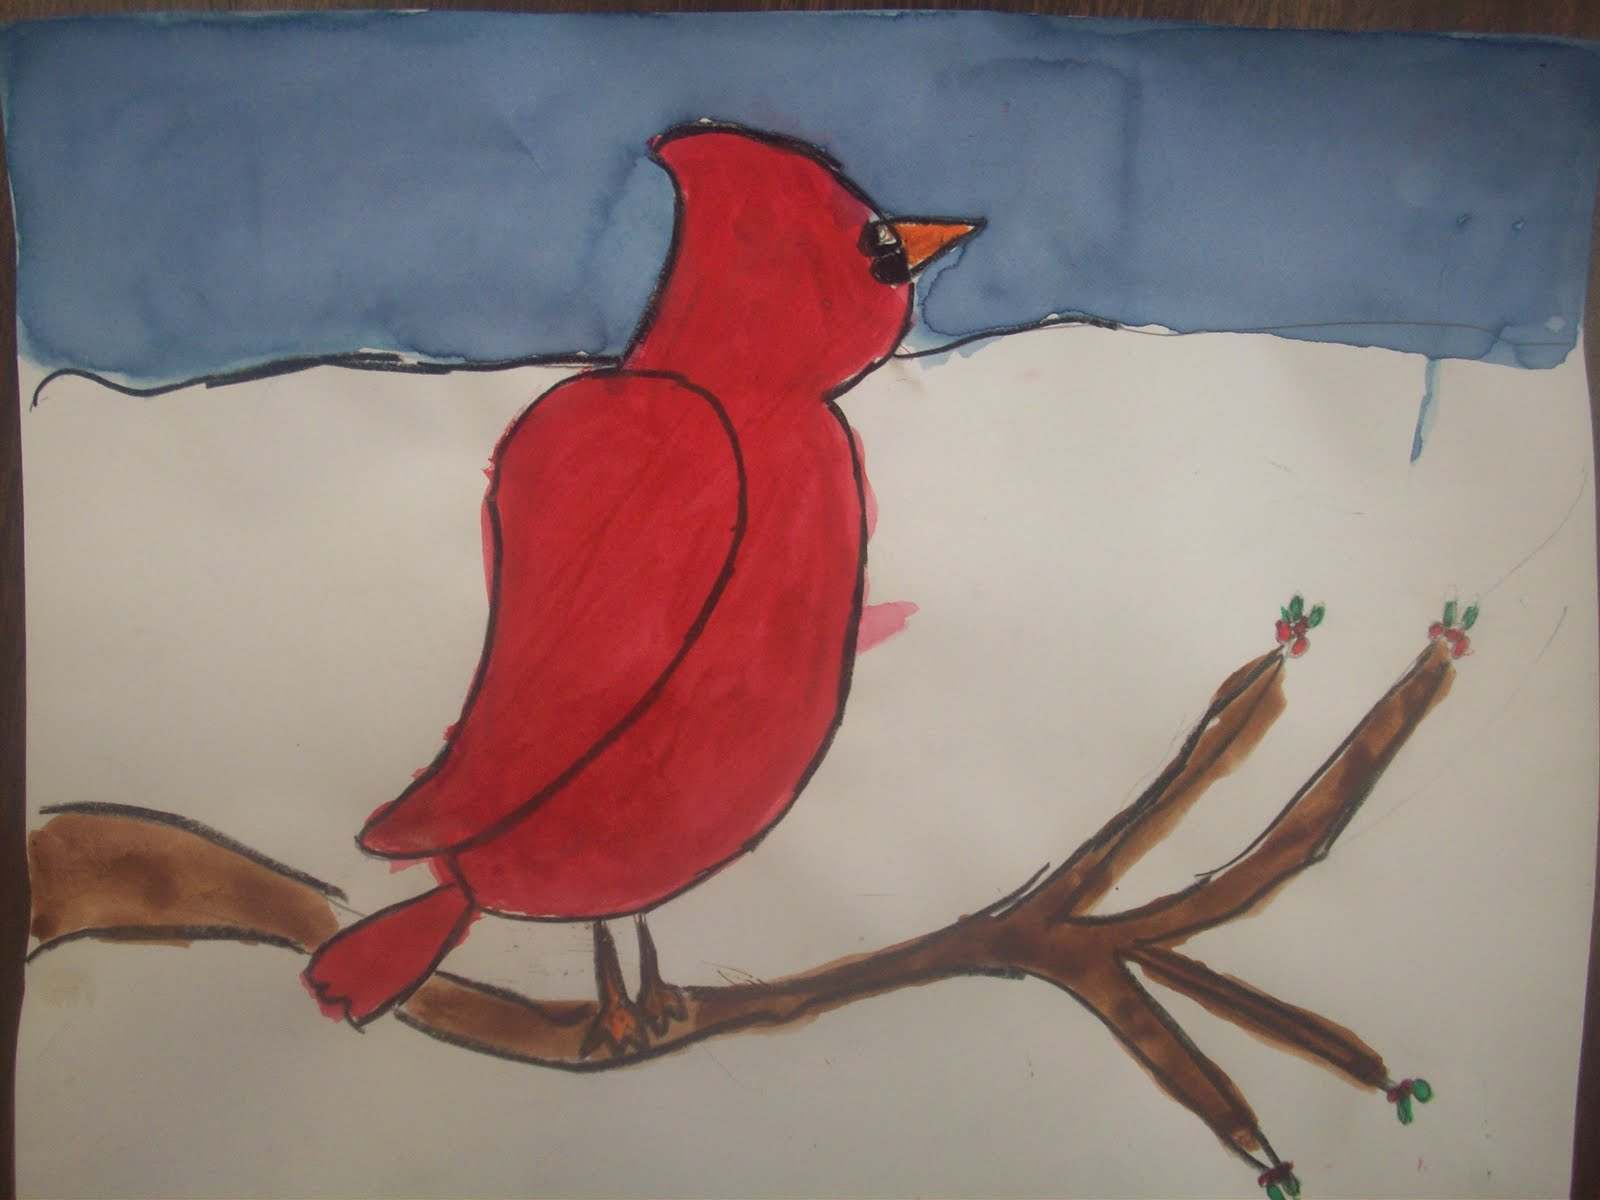 Crafts For Second Graders http://packhamspalette.blogspot.com/2011/12/2nd-grade-winter-cardinals.html